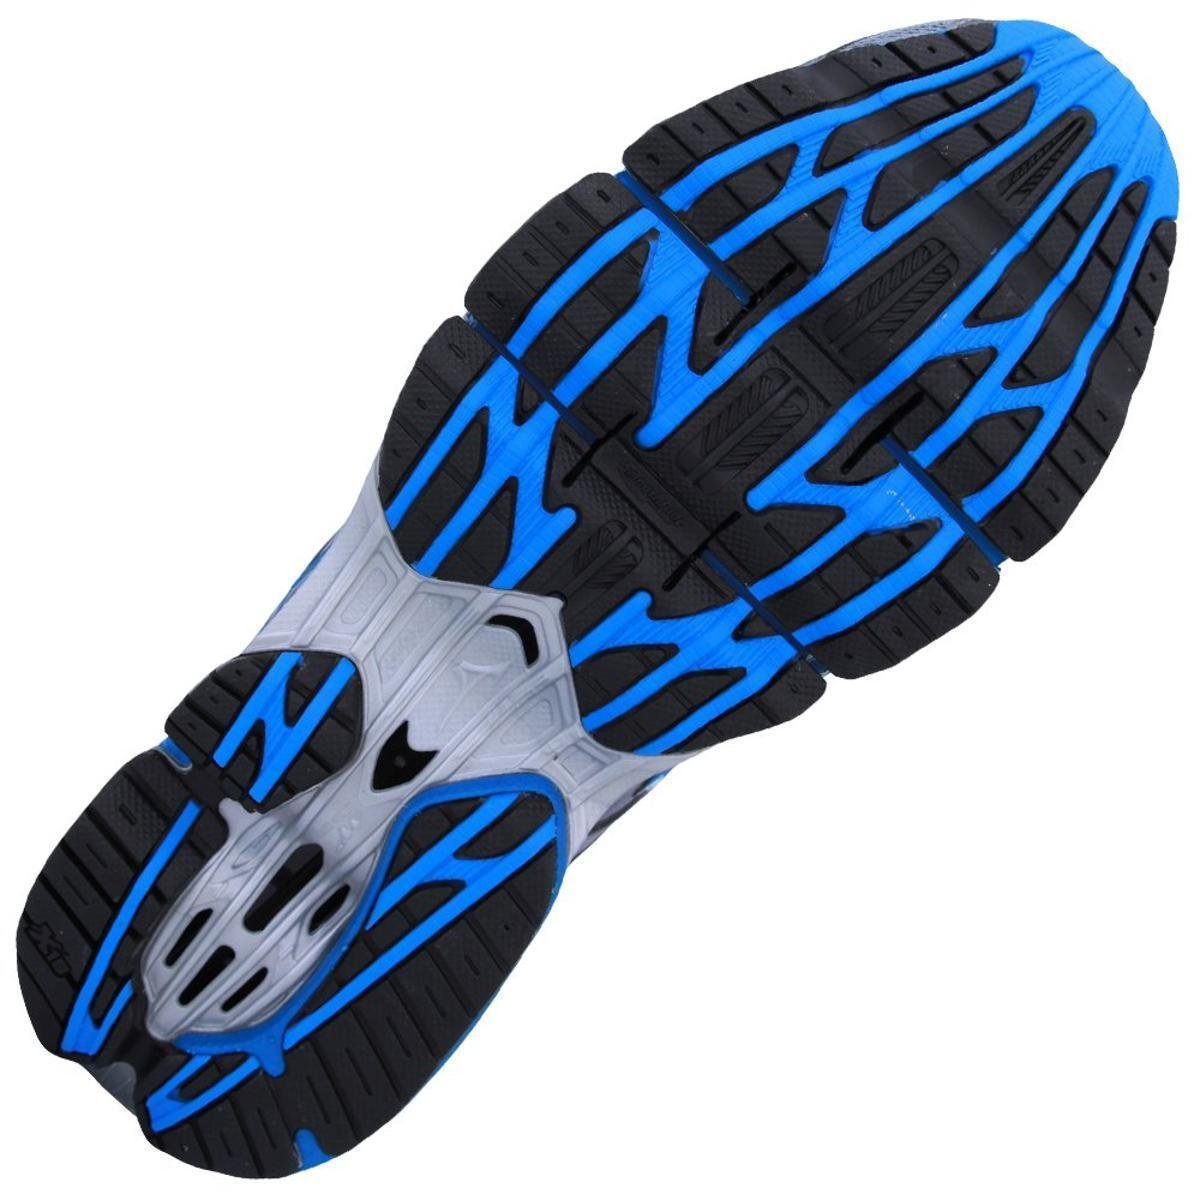 6dee5b86b0 Tênis Mizuno Wave Prophecy 7 Masculino - Prata e Azul - Compre Agora .